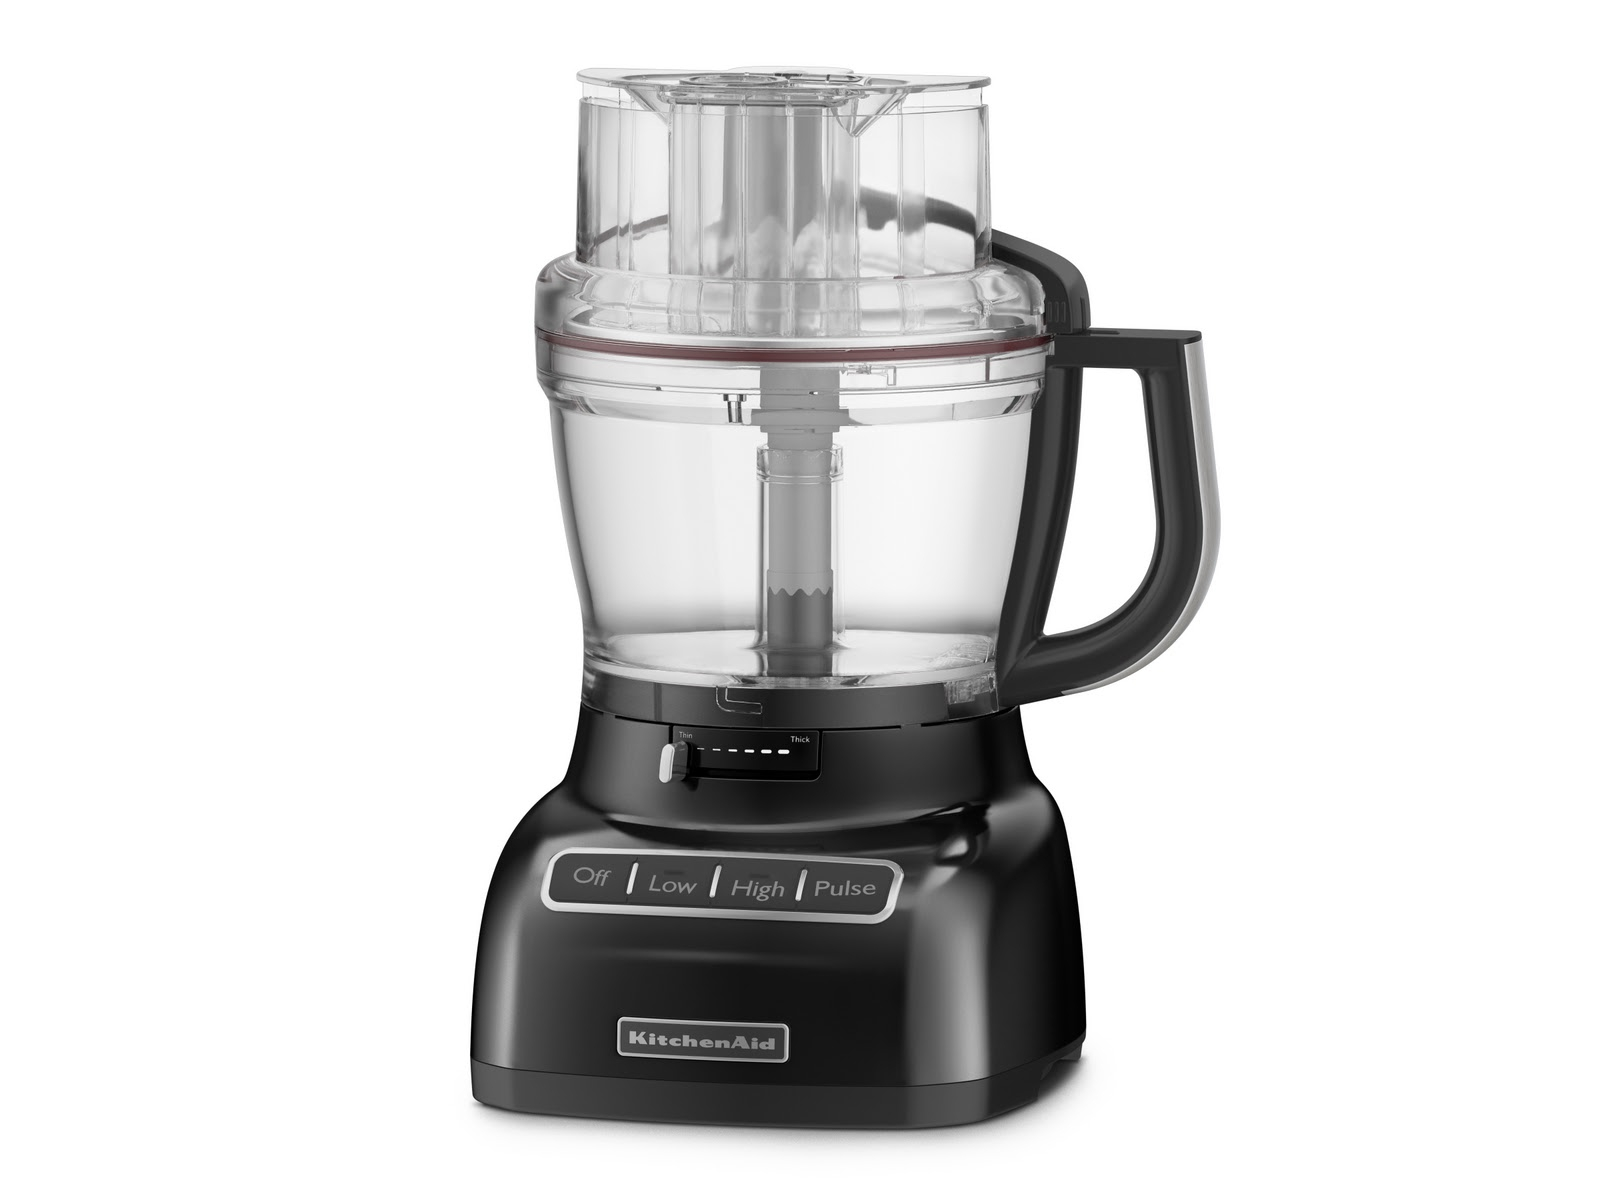 kitchenaid 13 cup food processor black friday 5k. Black Bedroom Furniture Sets. Home Design Ideas